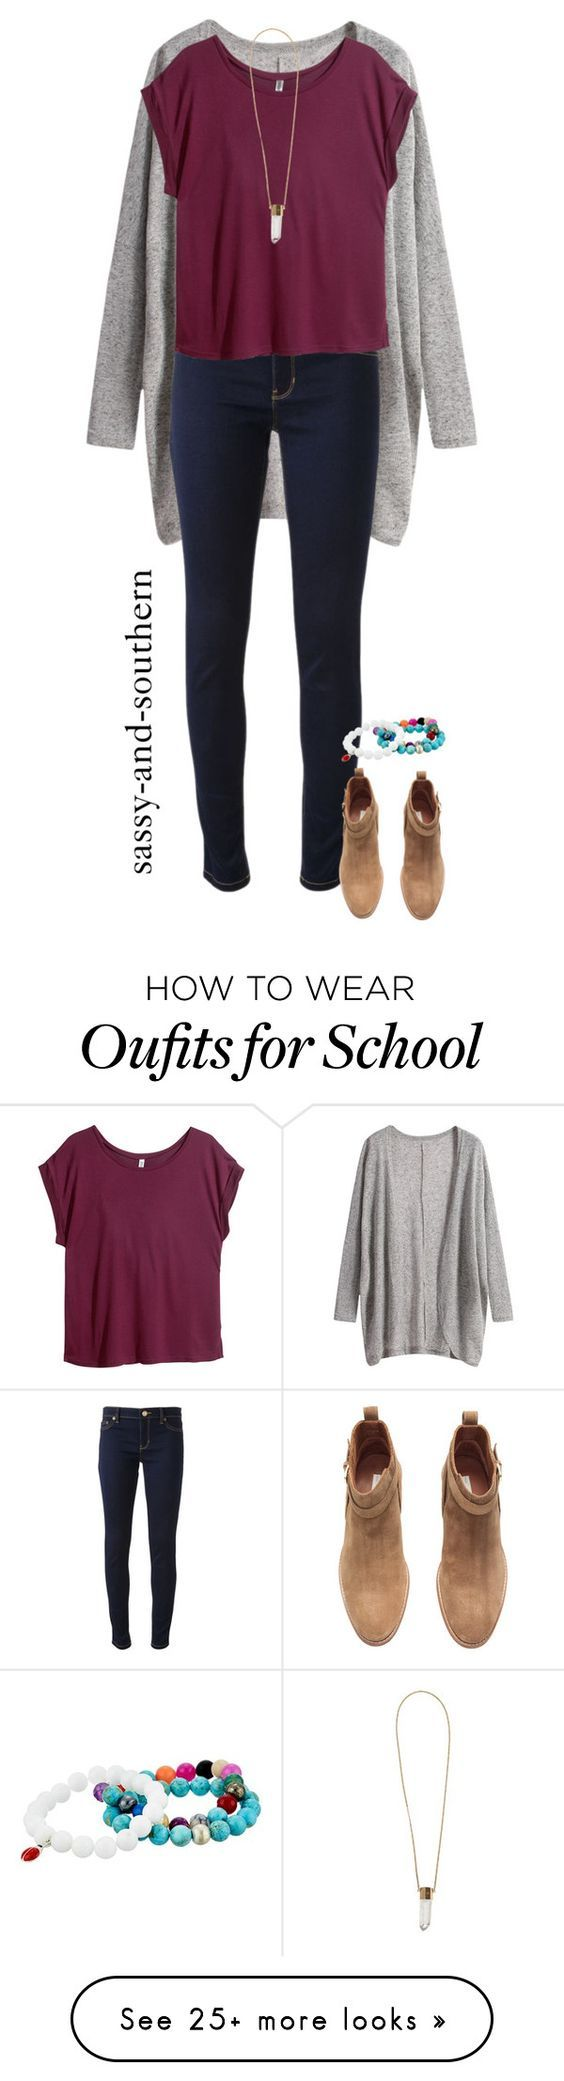 """""""school outfit"""" by sassy-and-southern on Polyvore featuring Michael Kors, H&M, Chloé, Dee Berkley and sassysouthernfall:"""